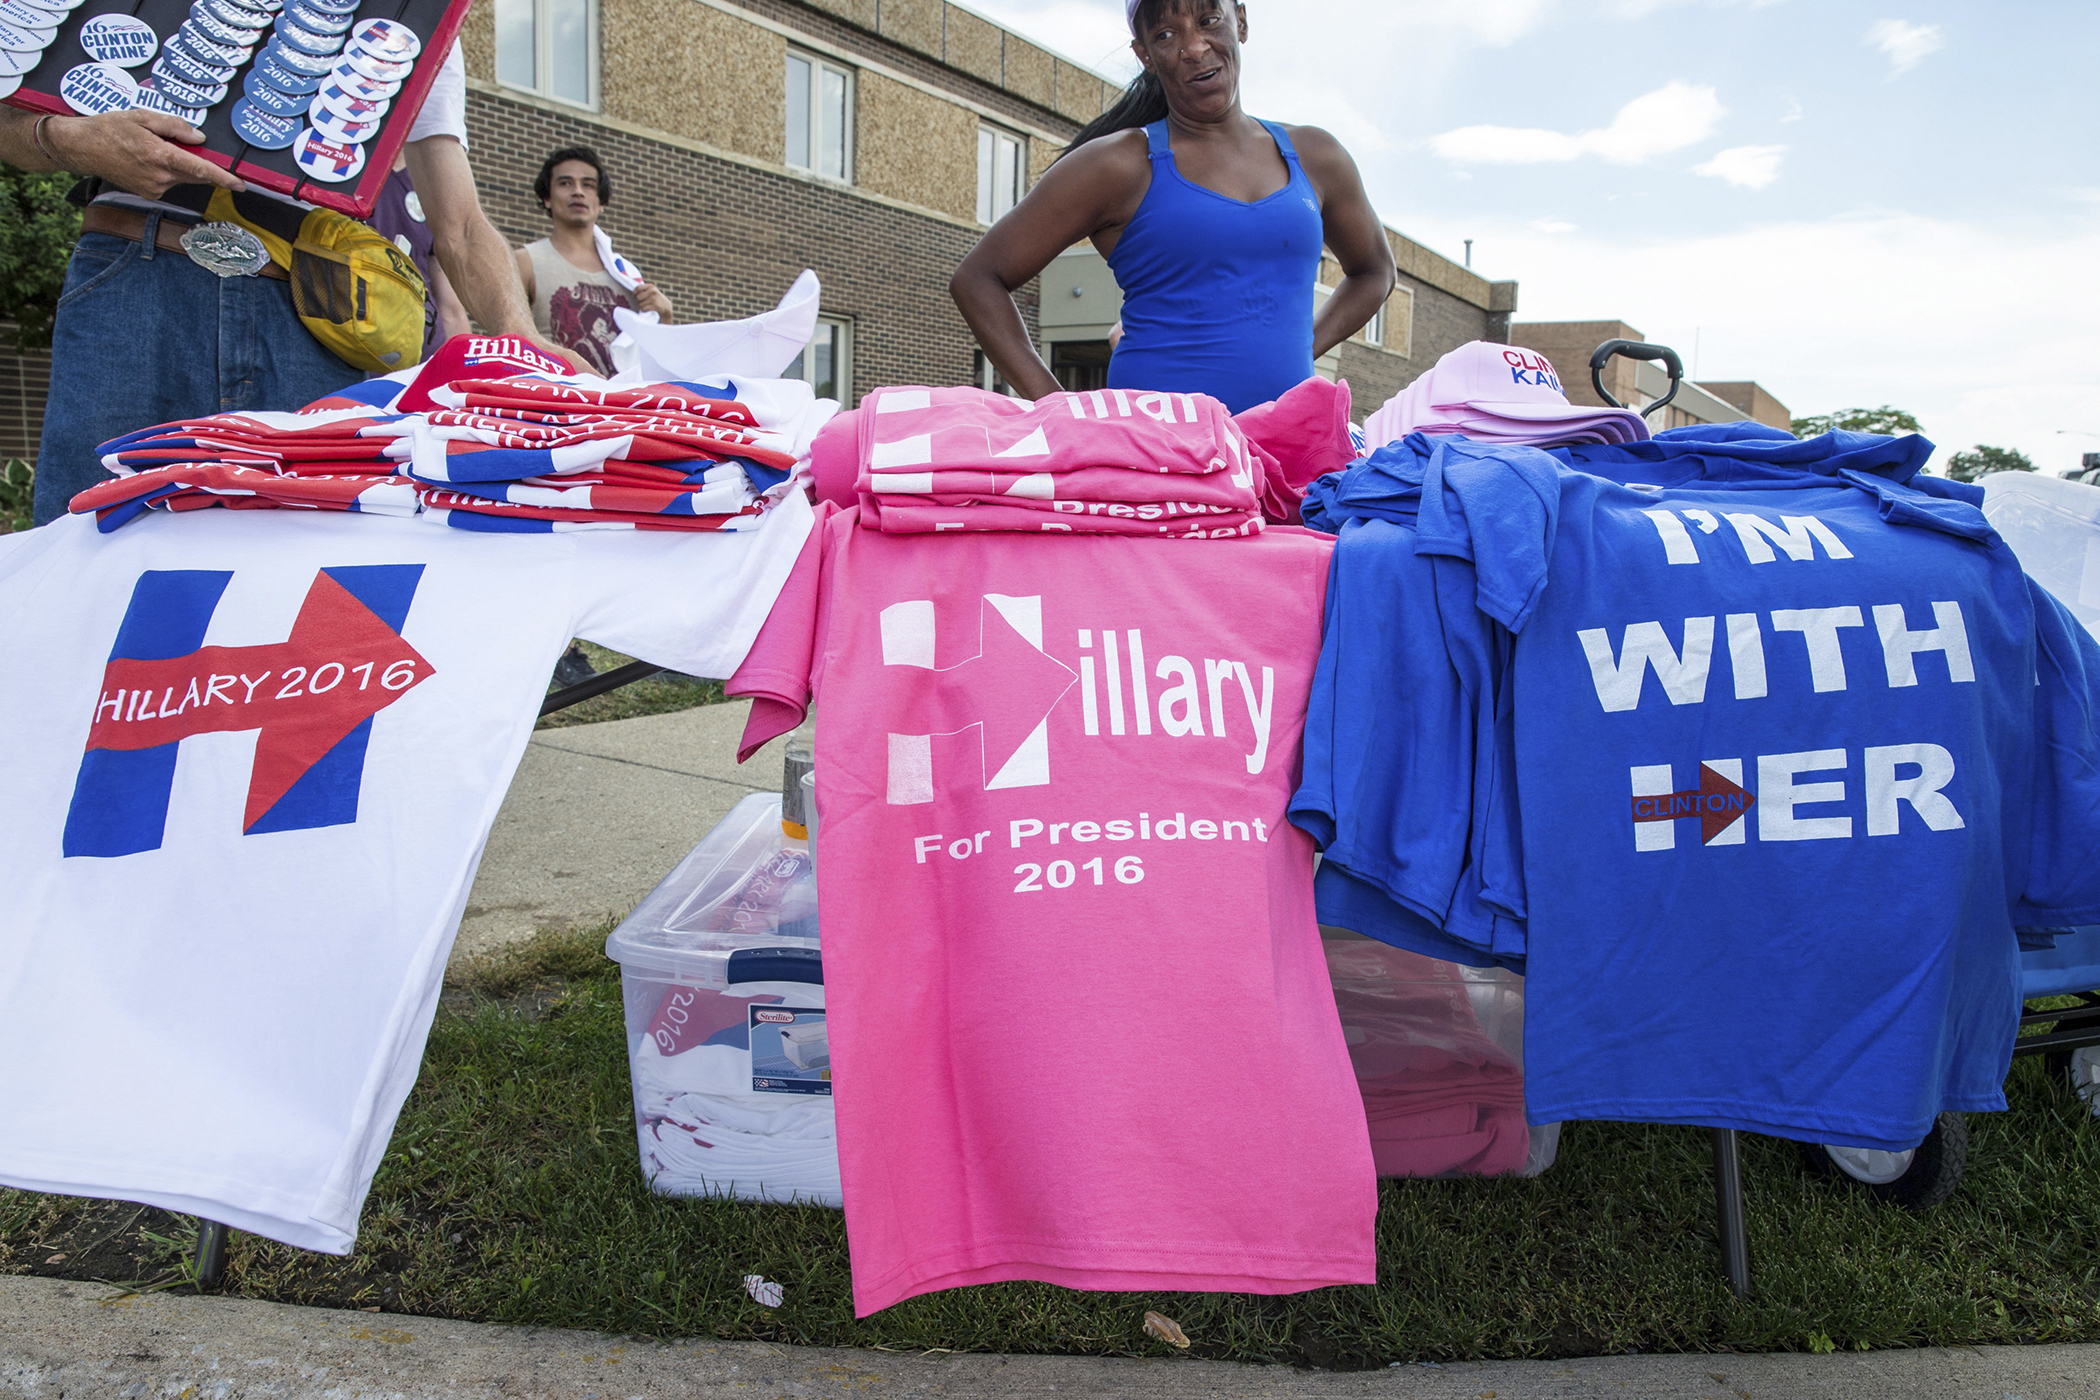 Hillary Clinton's memorabilia in Warren, MI, Aug. 11, 2016.